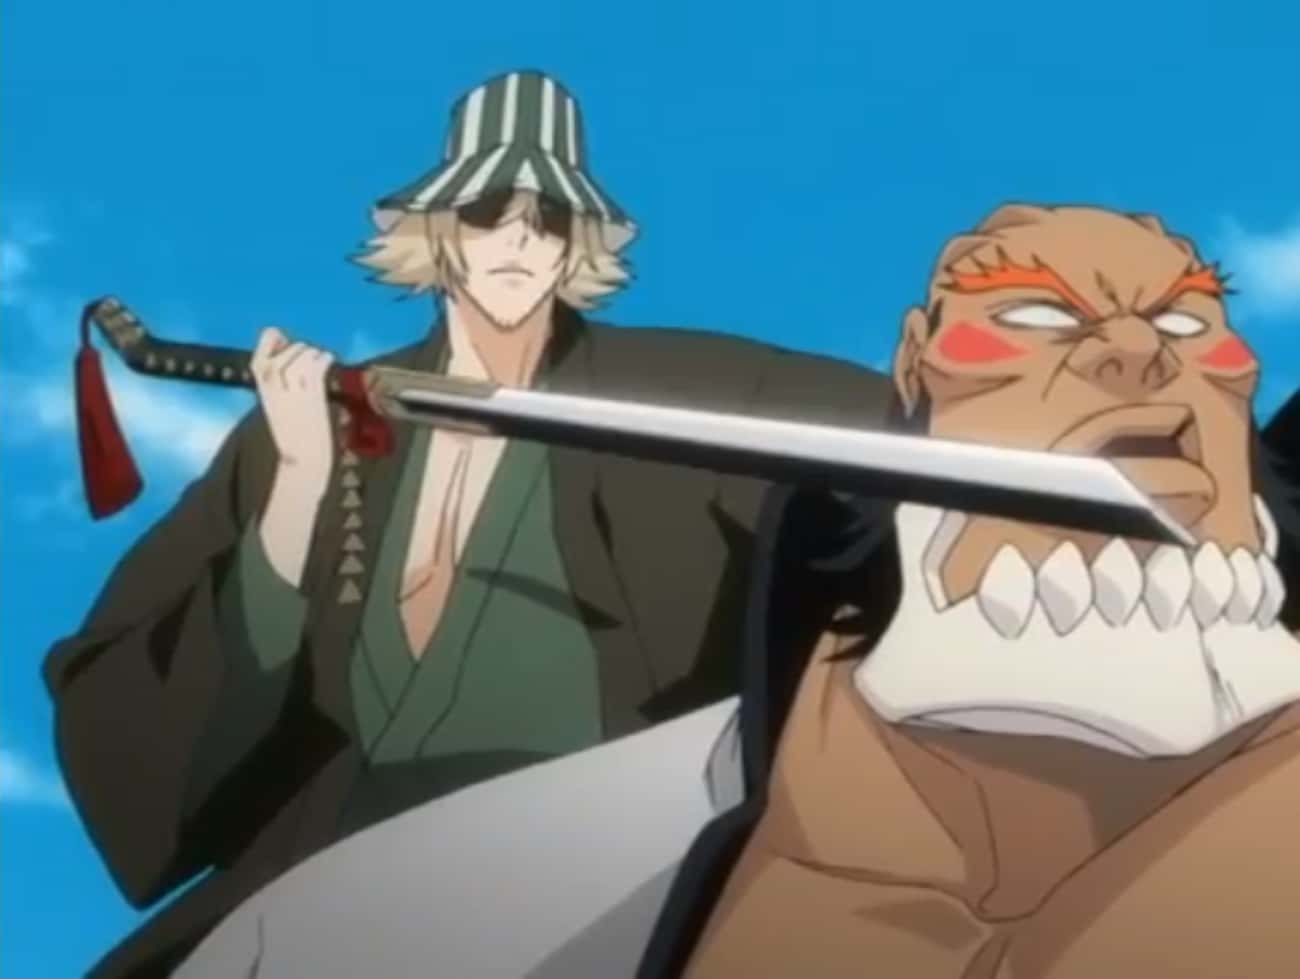 Benihime -?Kisuke Urahara is listed (or ranked) 2 on the list The 22 Greatest Zanpakutō in Bleach History, Ranked